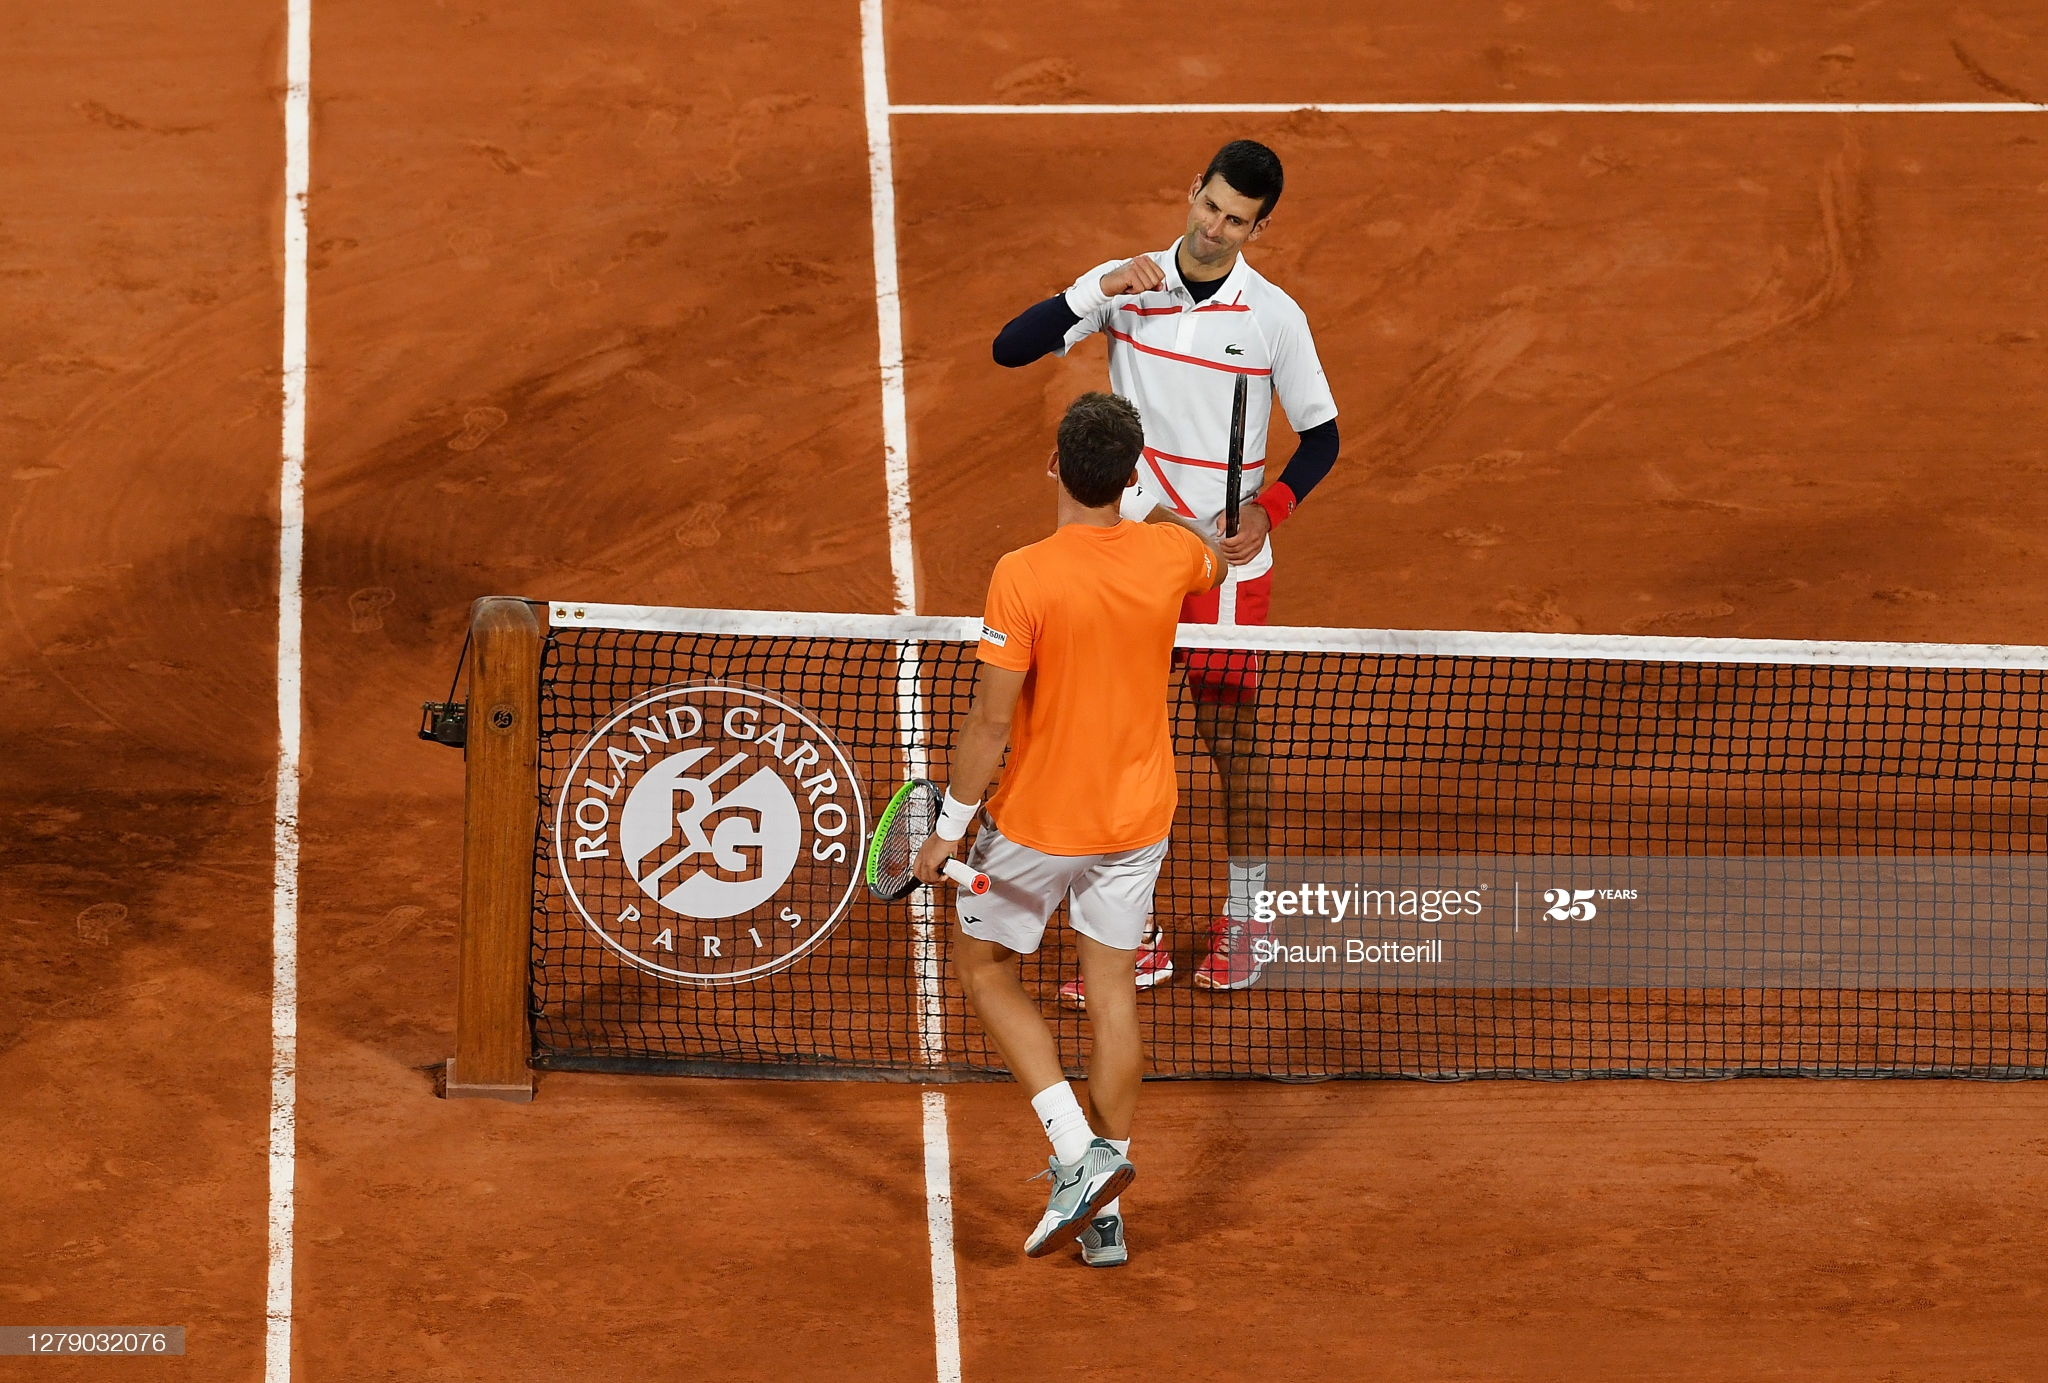 djokovic v pcb day 11 french open 2020